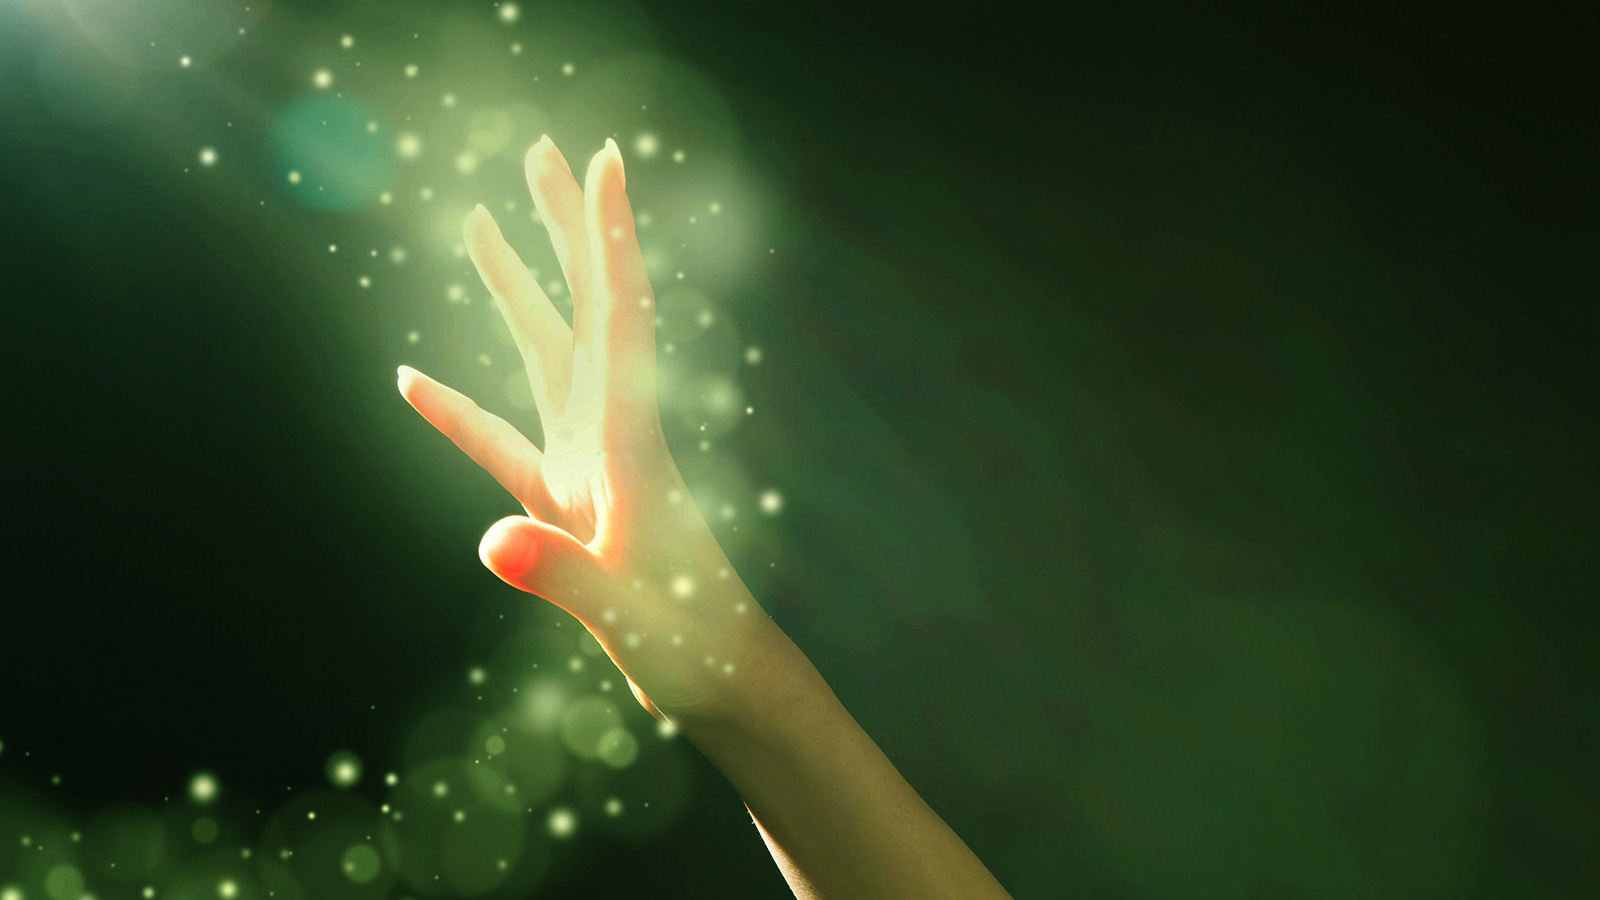 Magic particles with a hand